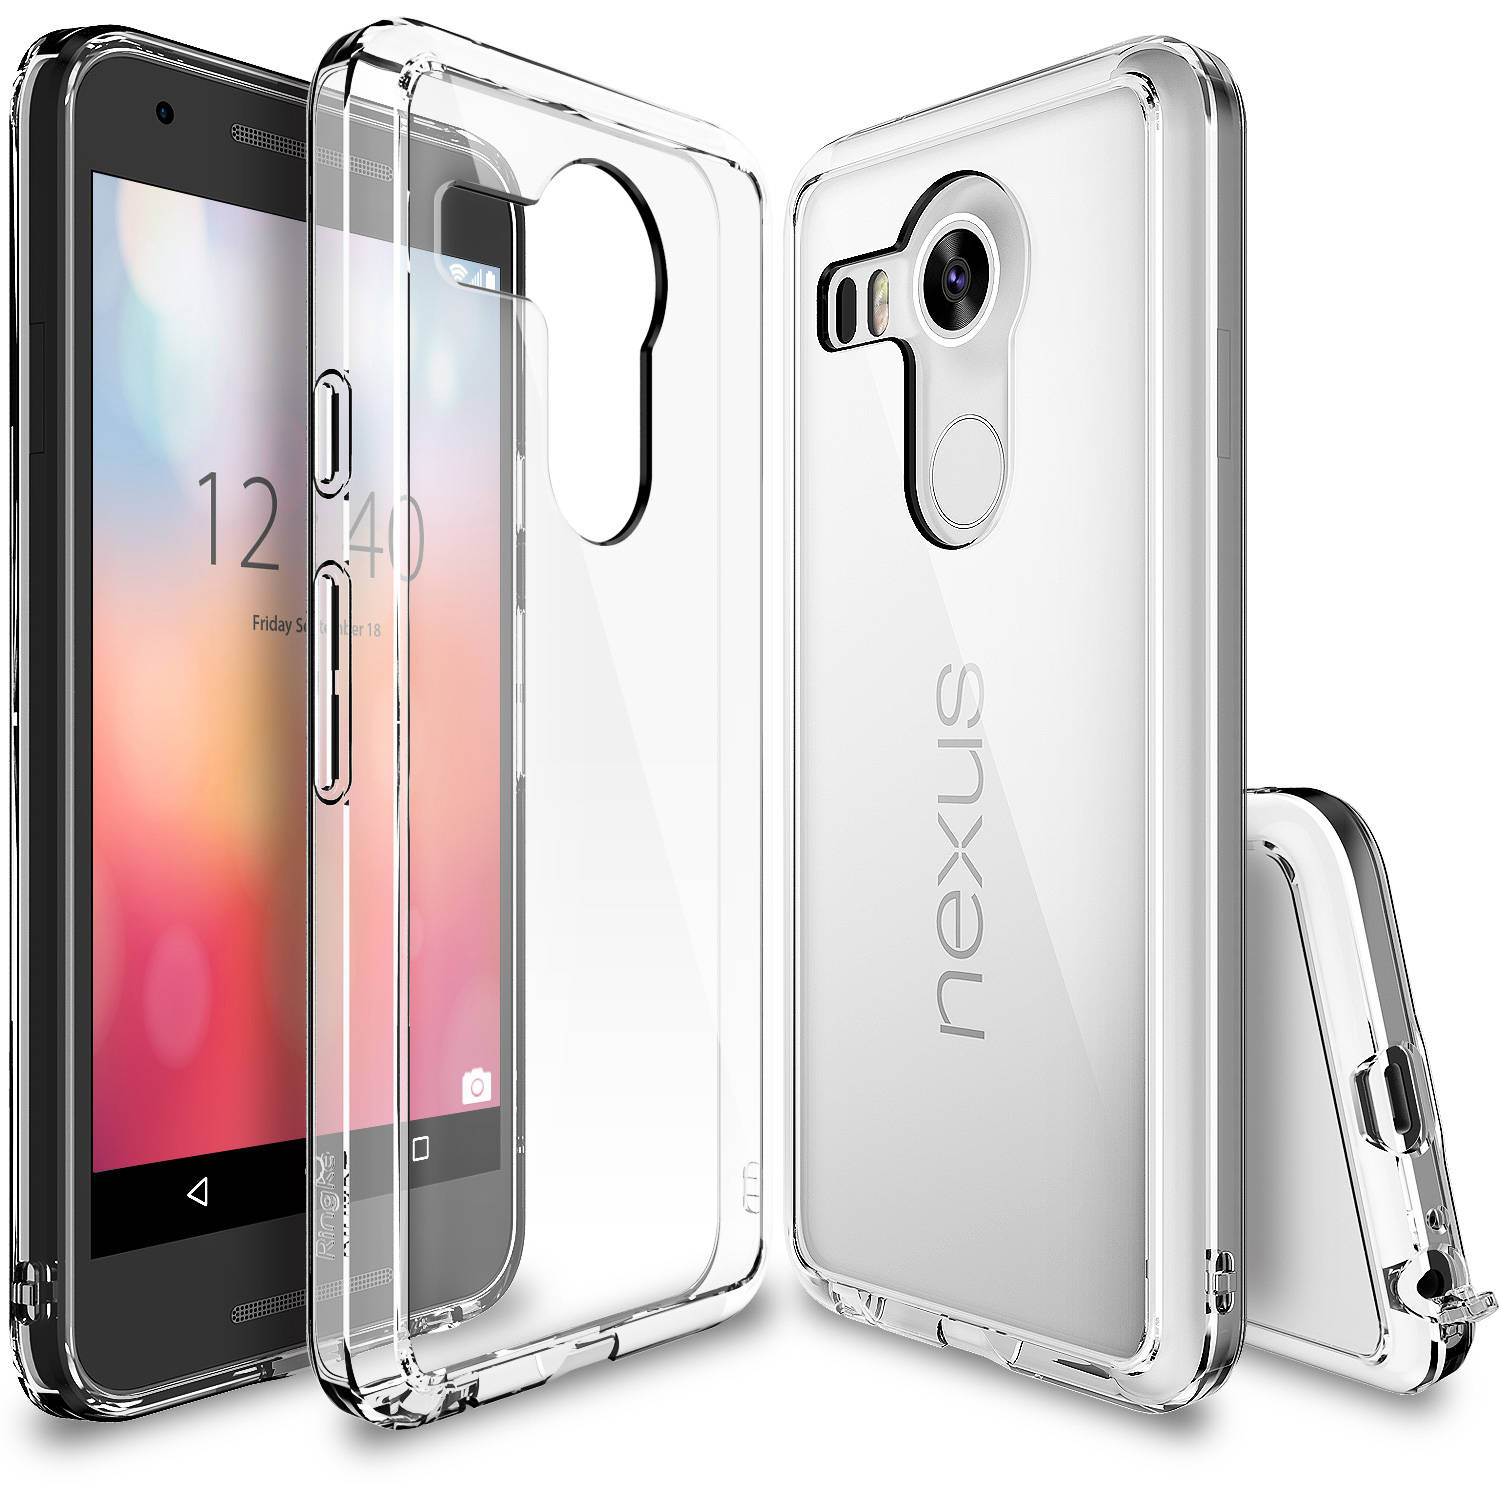 Ringke FUSION Case for Google New Nexus 5X 2nd Generation